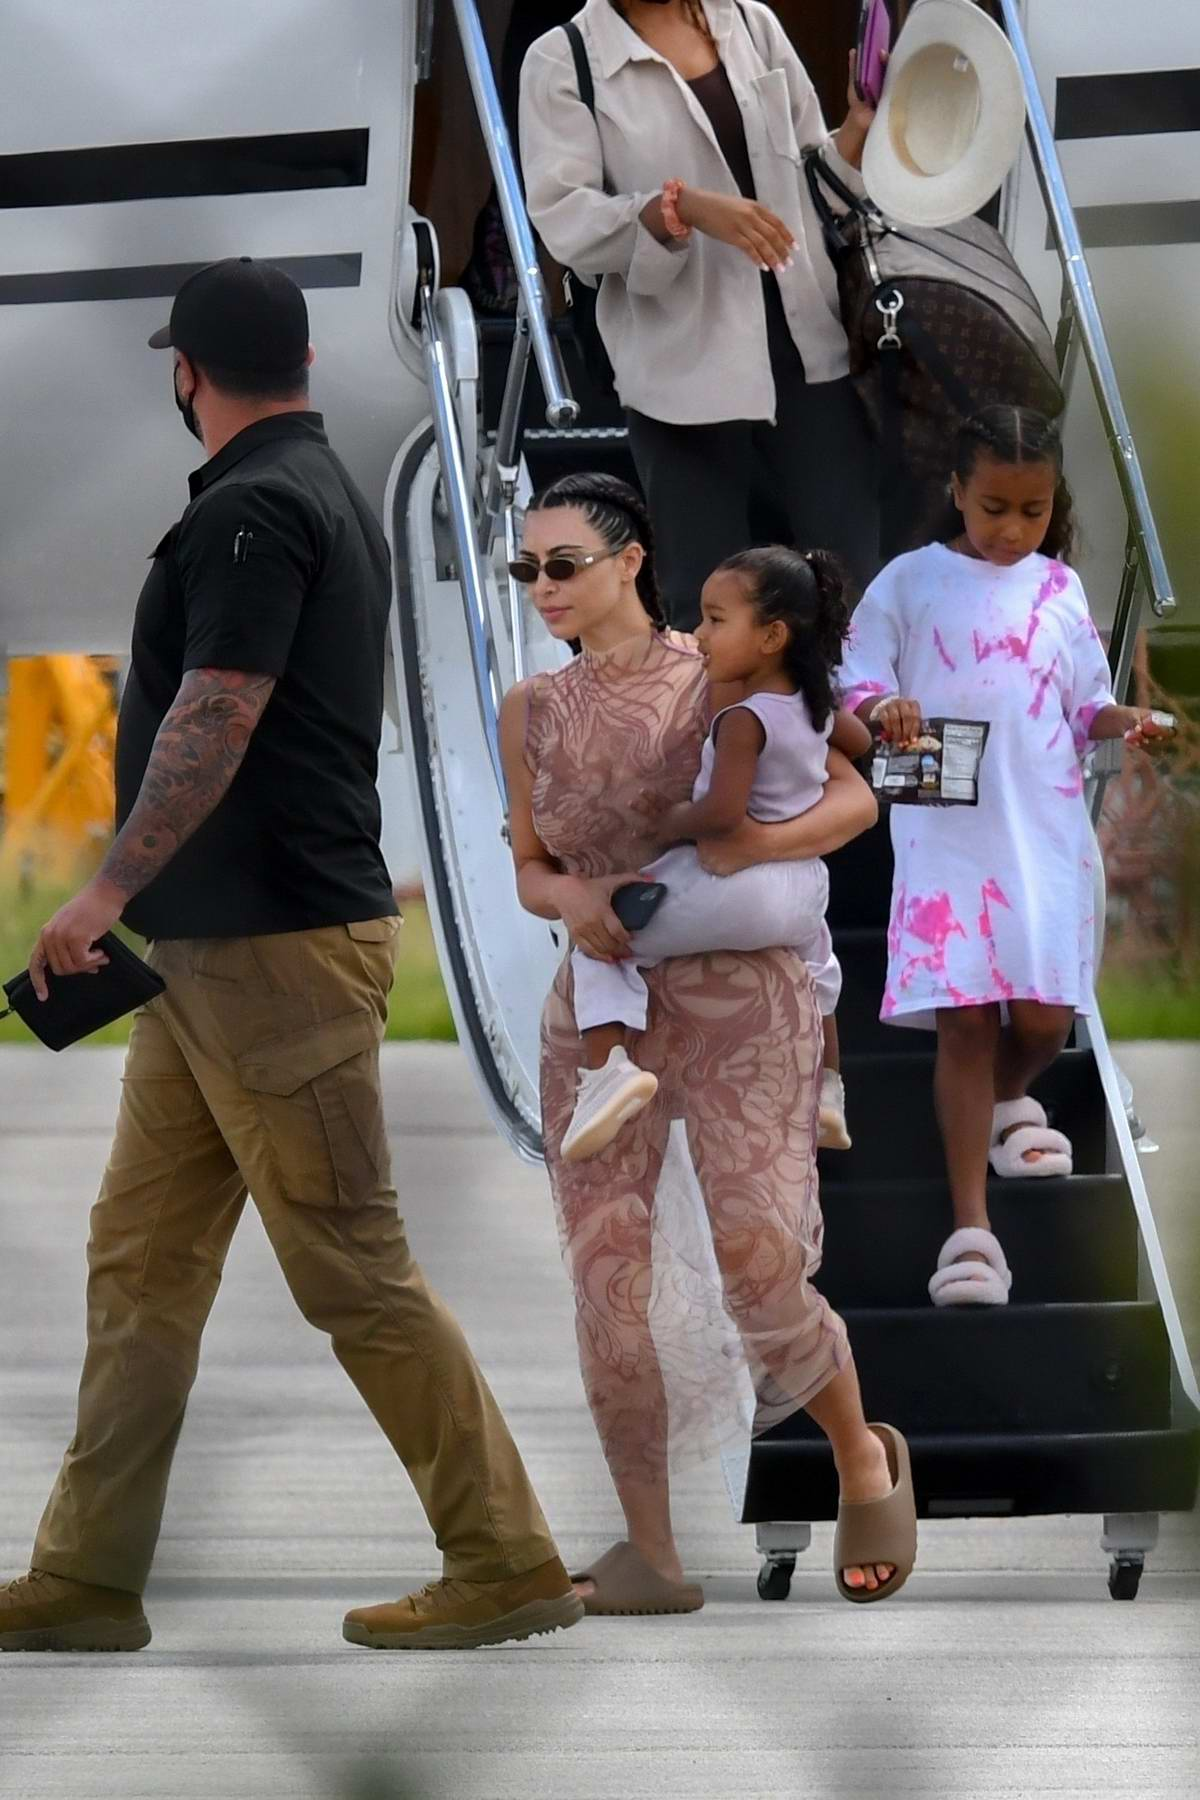 Kim Kardashian and Kanye West arrive back in Miami after spending time in Dominican Republic, Miami, Florida